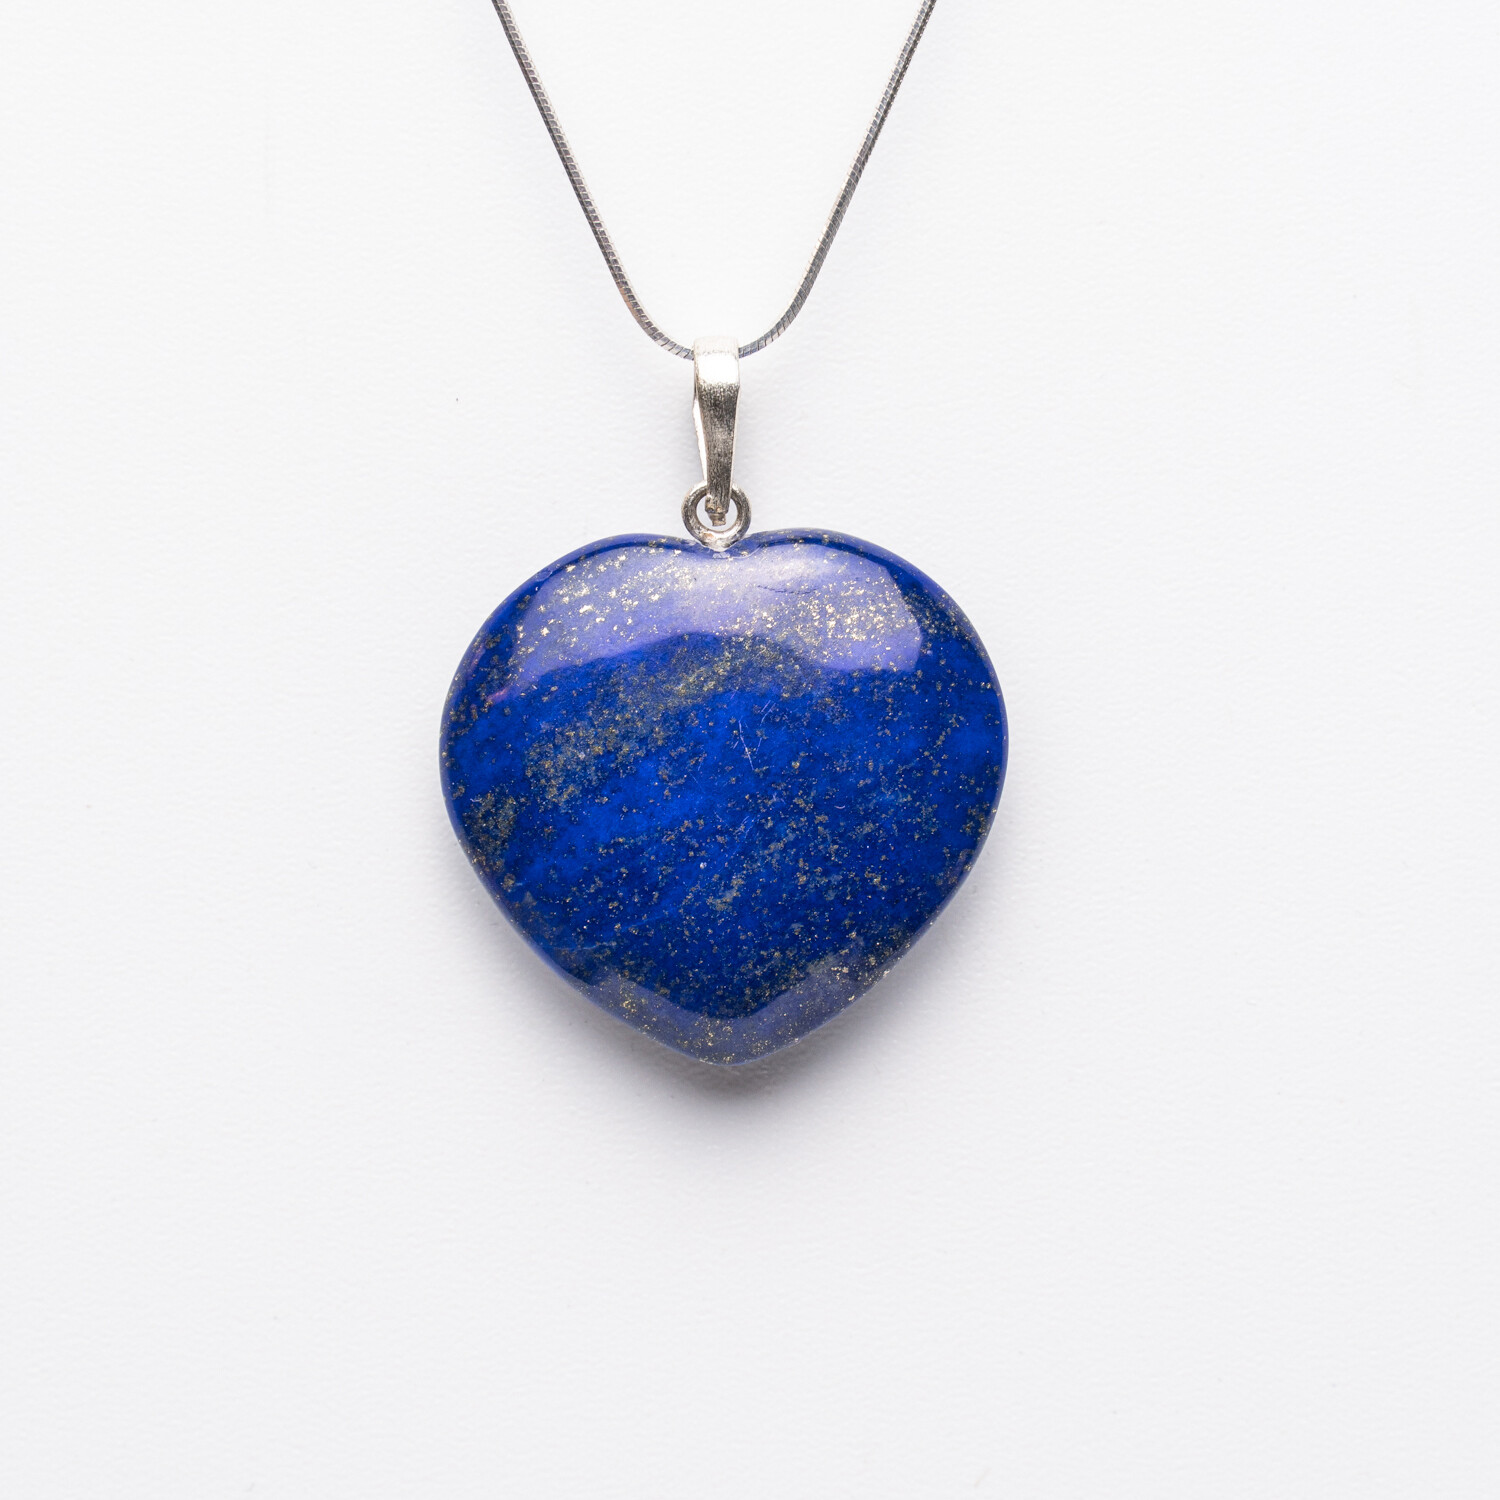 Genuine Lapis Lazuli Heart on Sterling Silver Chain